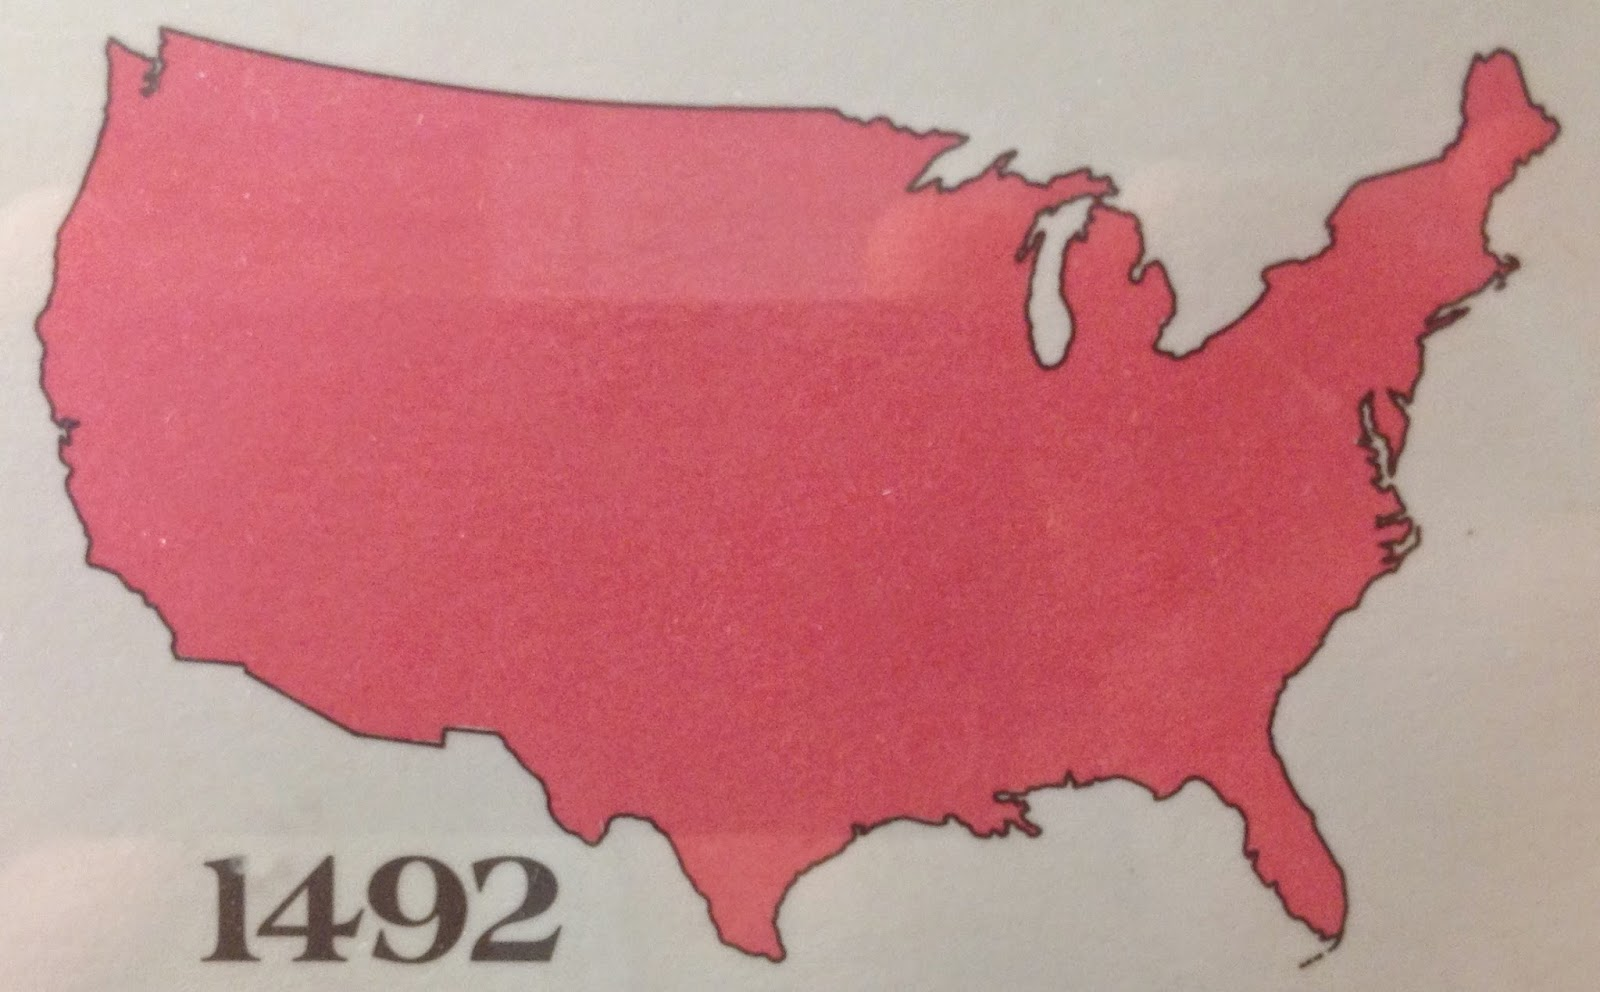 similarly to the map above the picture shows a timeline of the conquest of native american land by european settlers